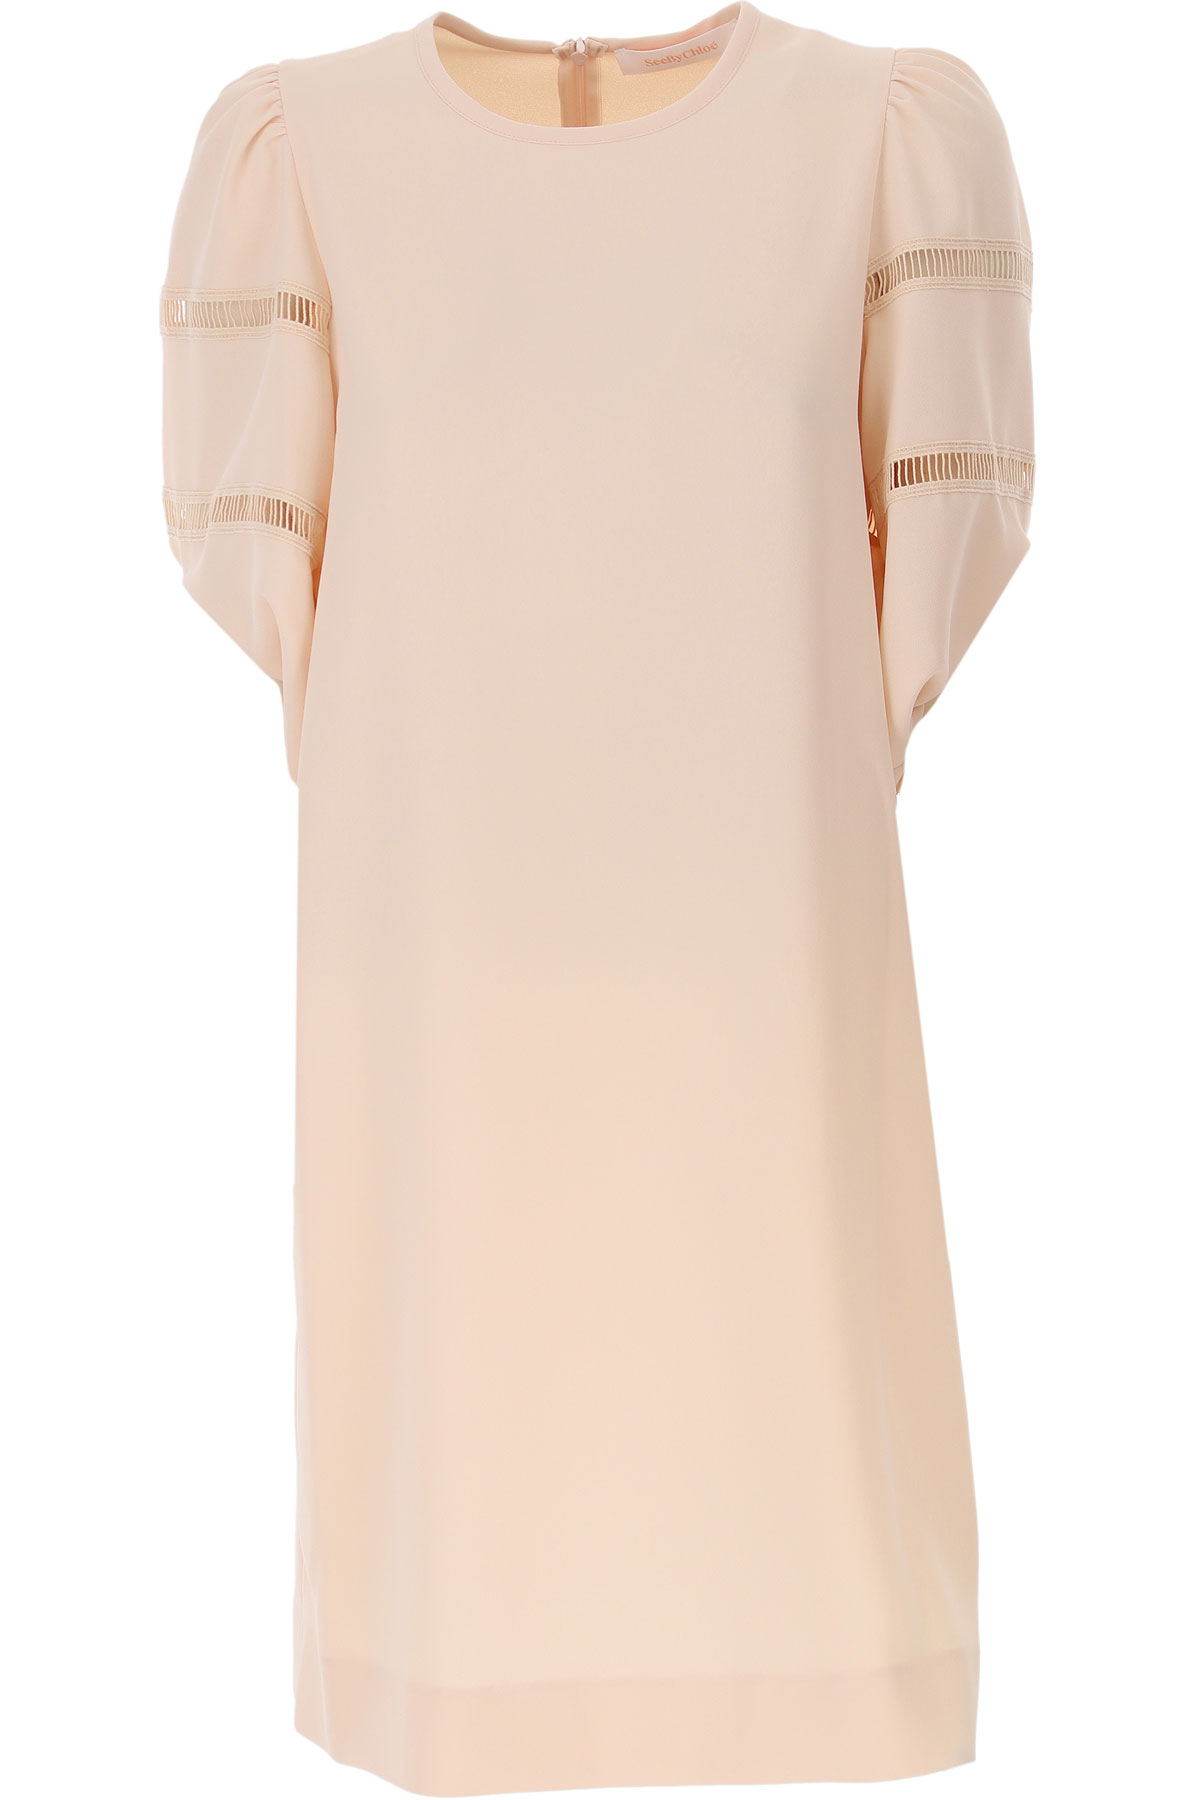 See By Chloe Dress for Women, Evening Cocktail Party, Sand Rose, polyester, 2019, 2 4